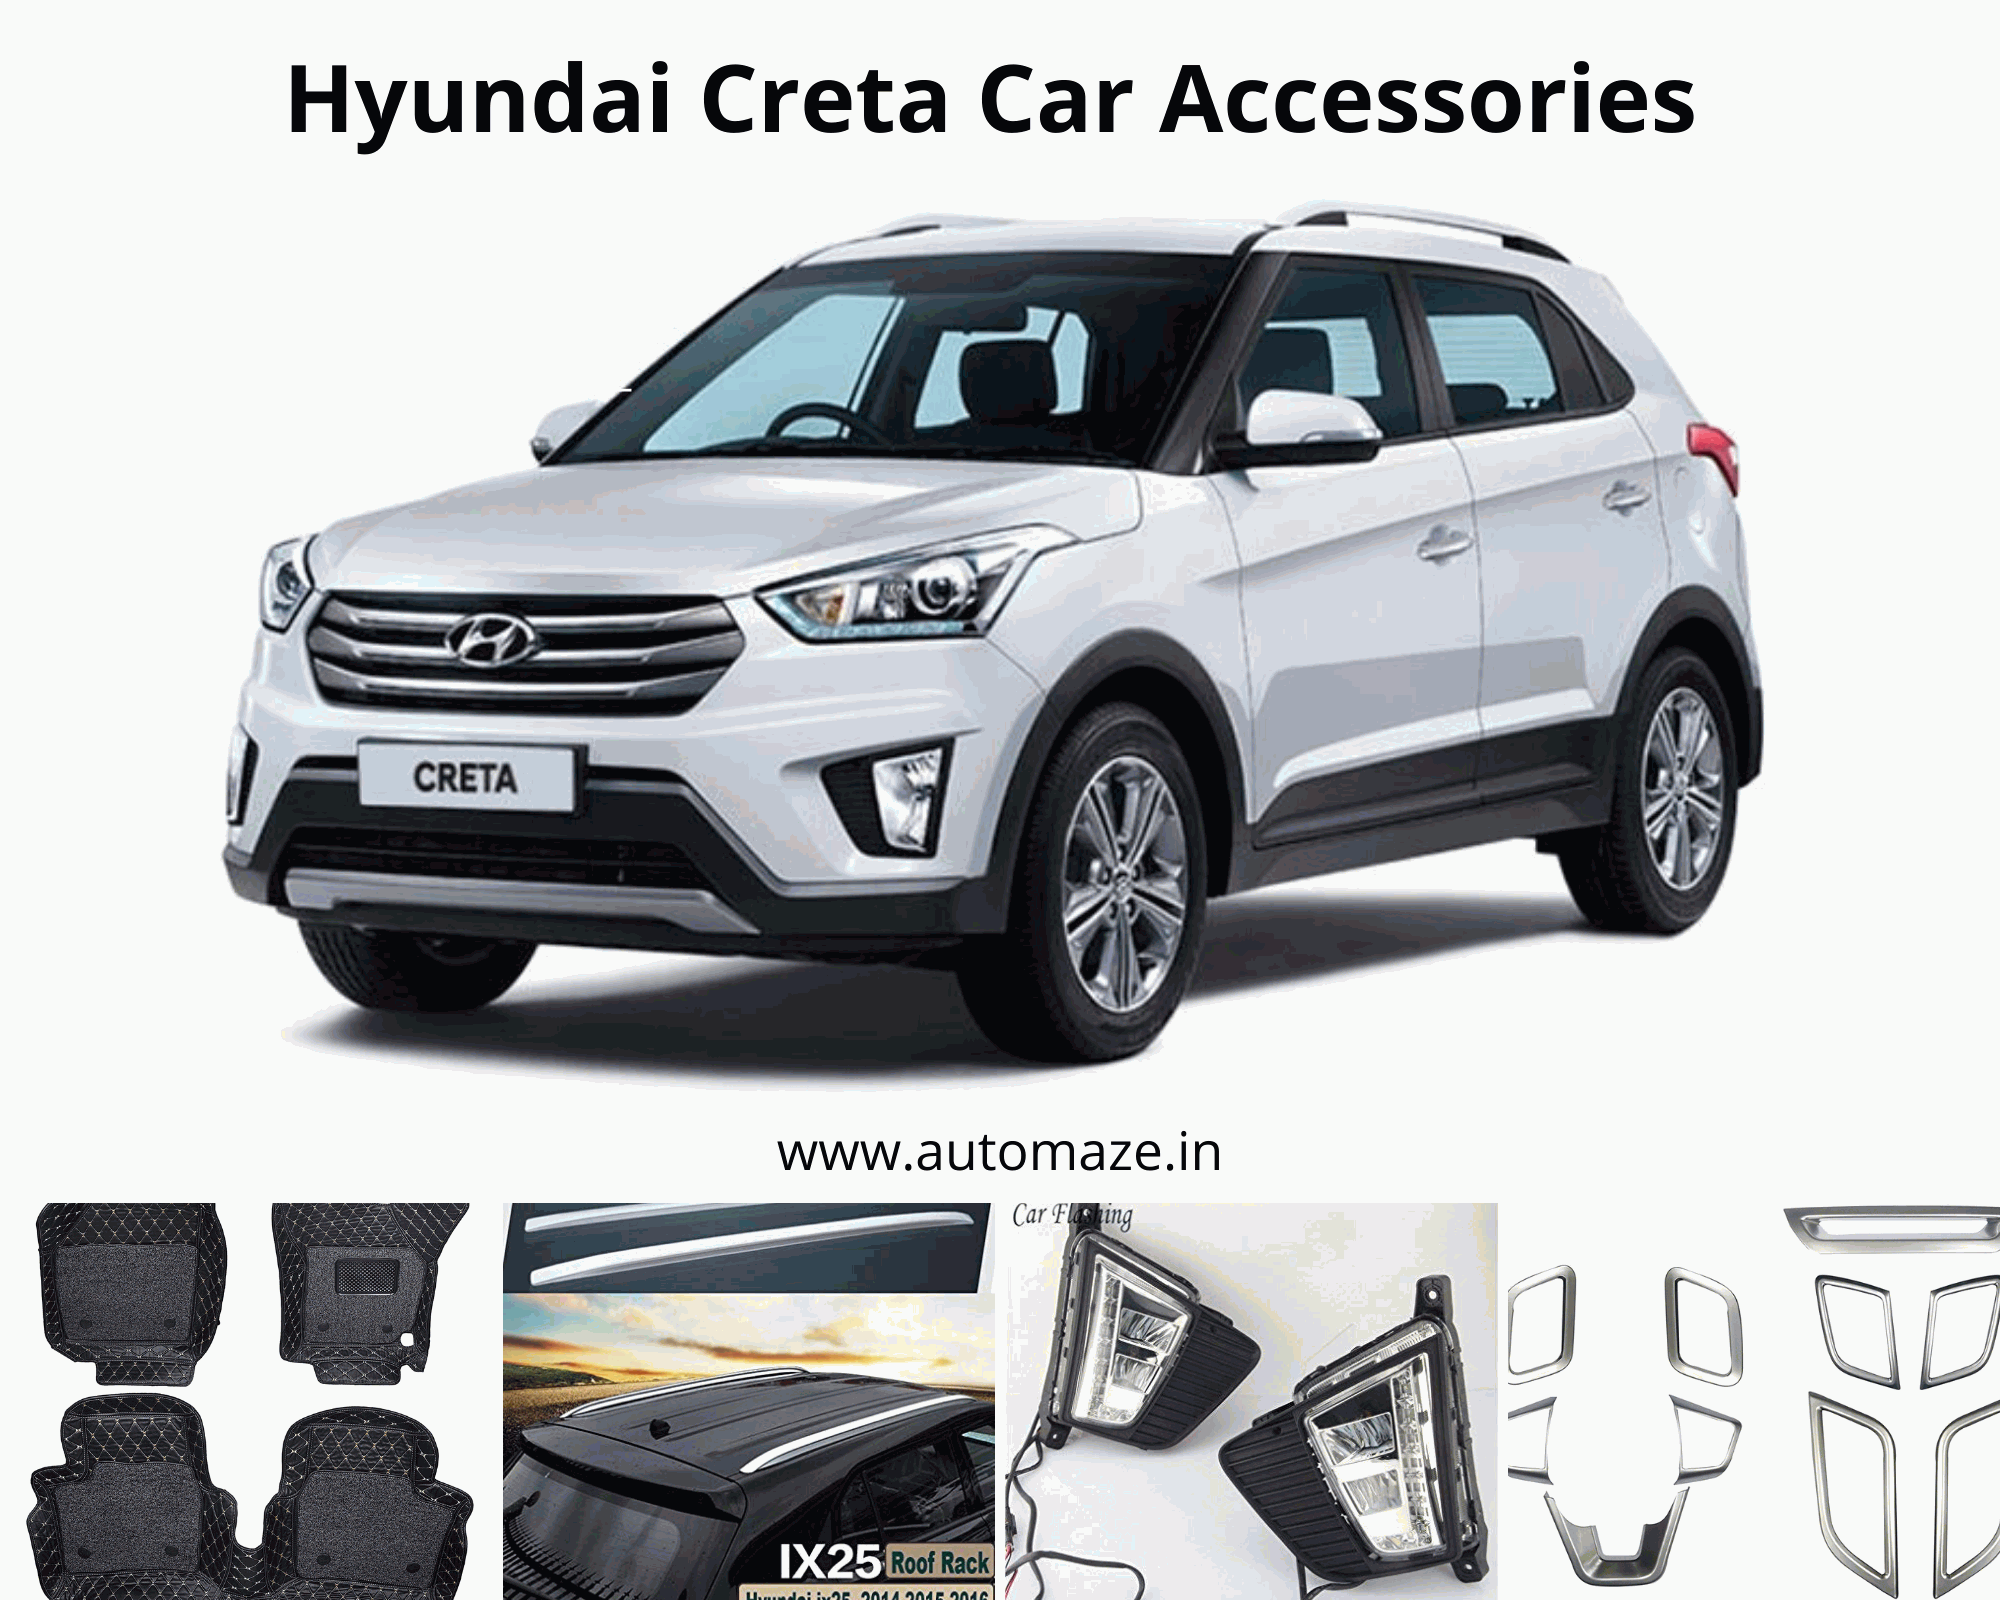 Buy Hyundai Creta Car Accessories In 2020 Car Accessories Car Car Interior Accessories